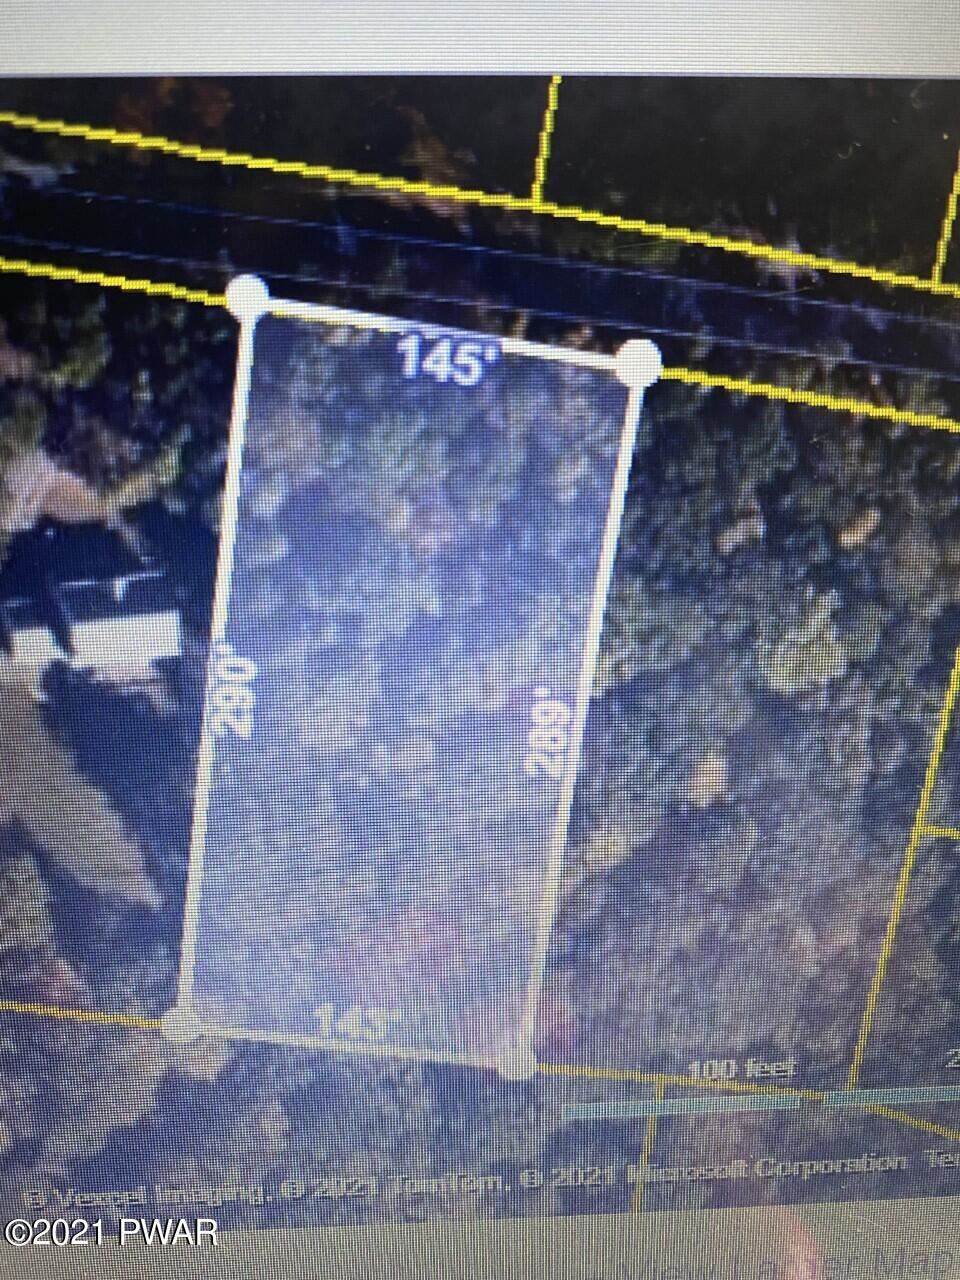 Photo of LOT 310 FRENCH COACH Rd, Milford, PA 18337 (MLS # 21-3026)